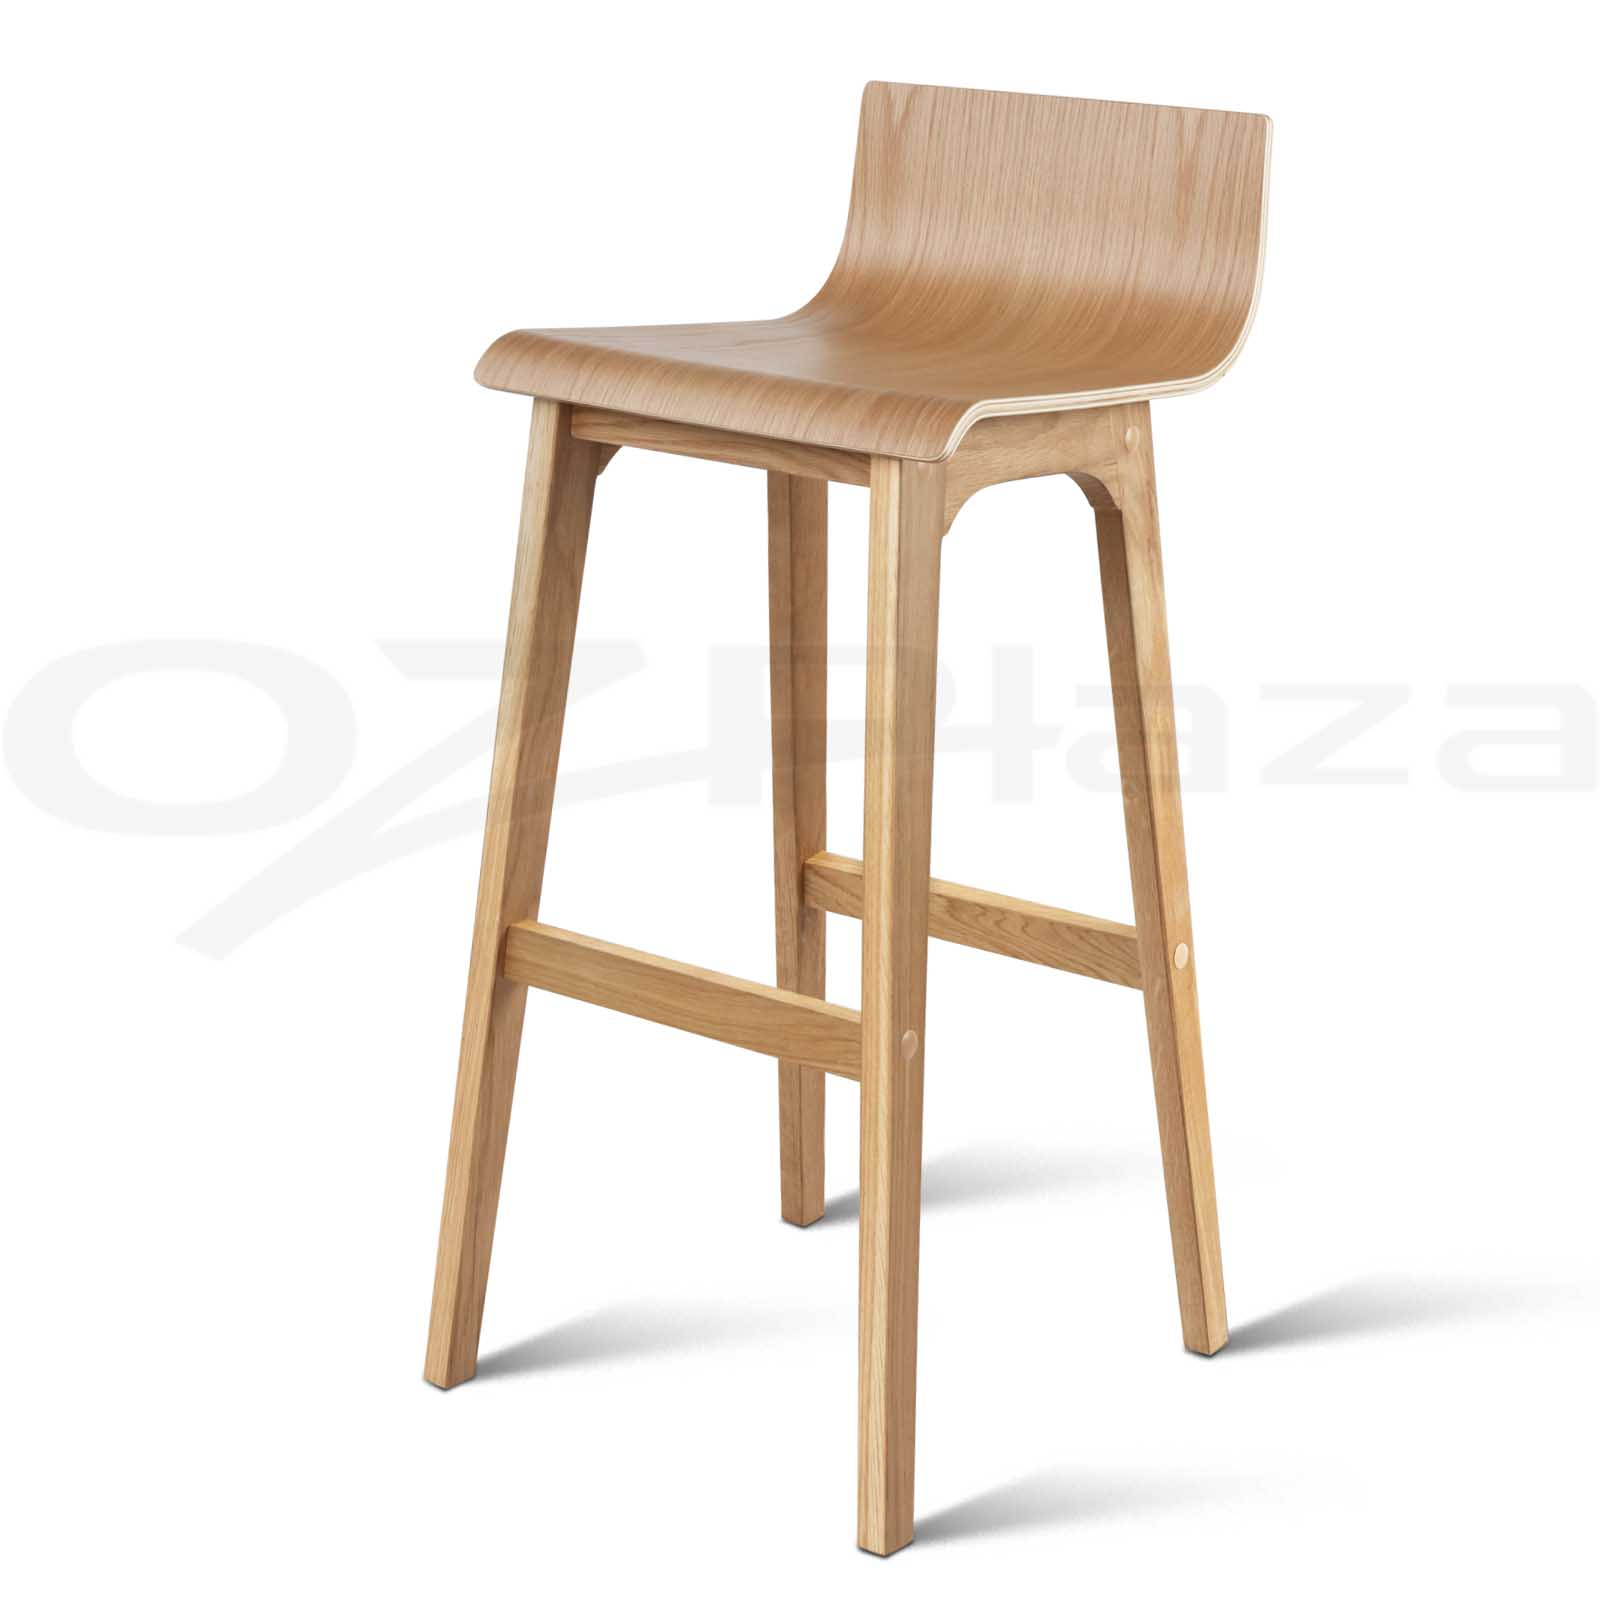 Marvelous photograph of 2x Oak Wood Bar Stool Wooden Dining Chair Kitchen Side Plywood Natural  with #4D301B color and 1600x1600 pixels